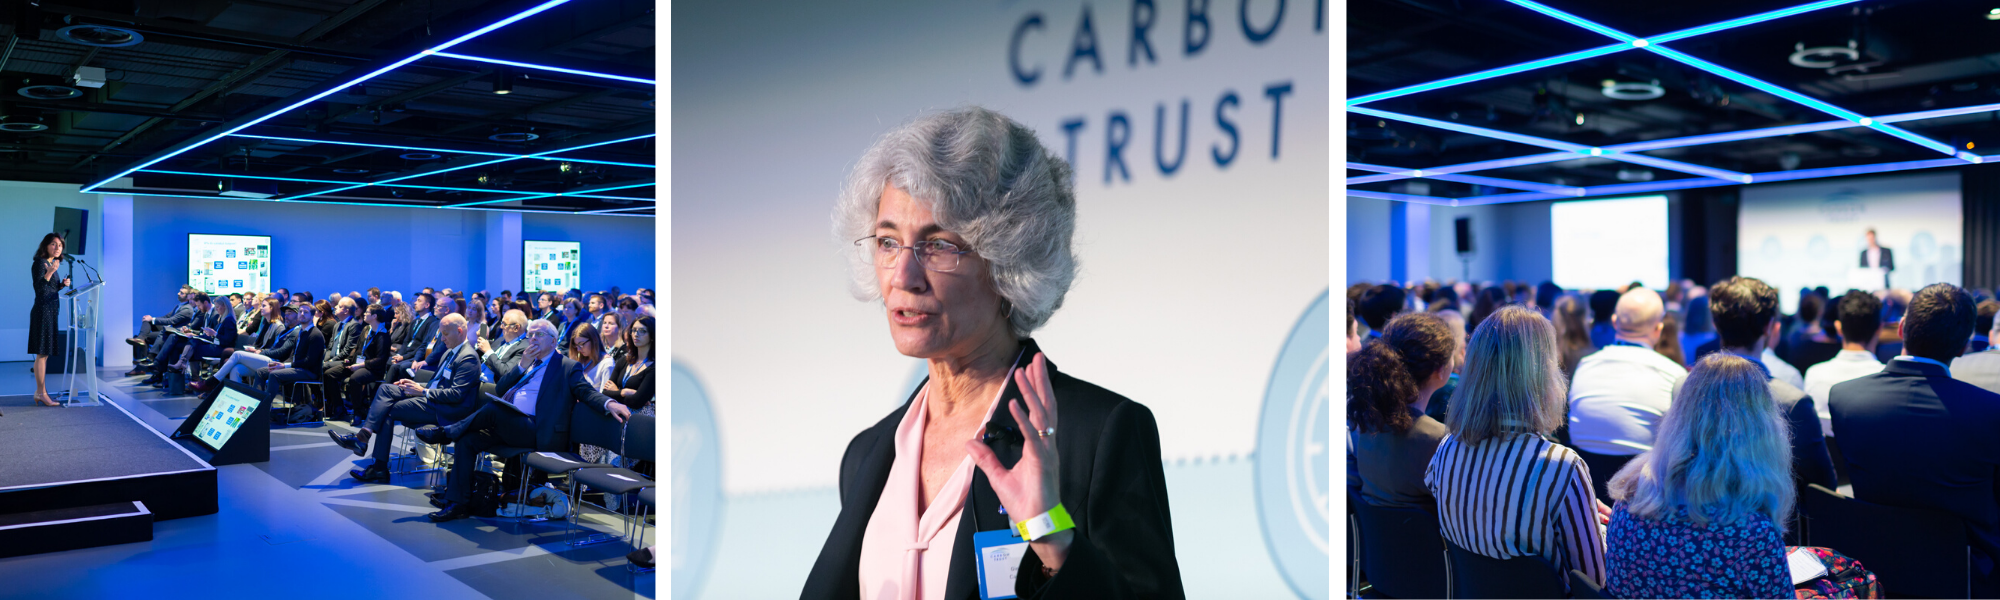 Corporate Sustainability Summit 2019 images